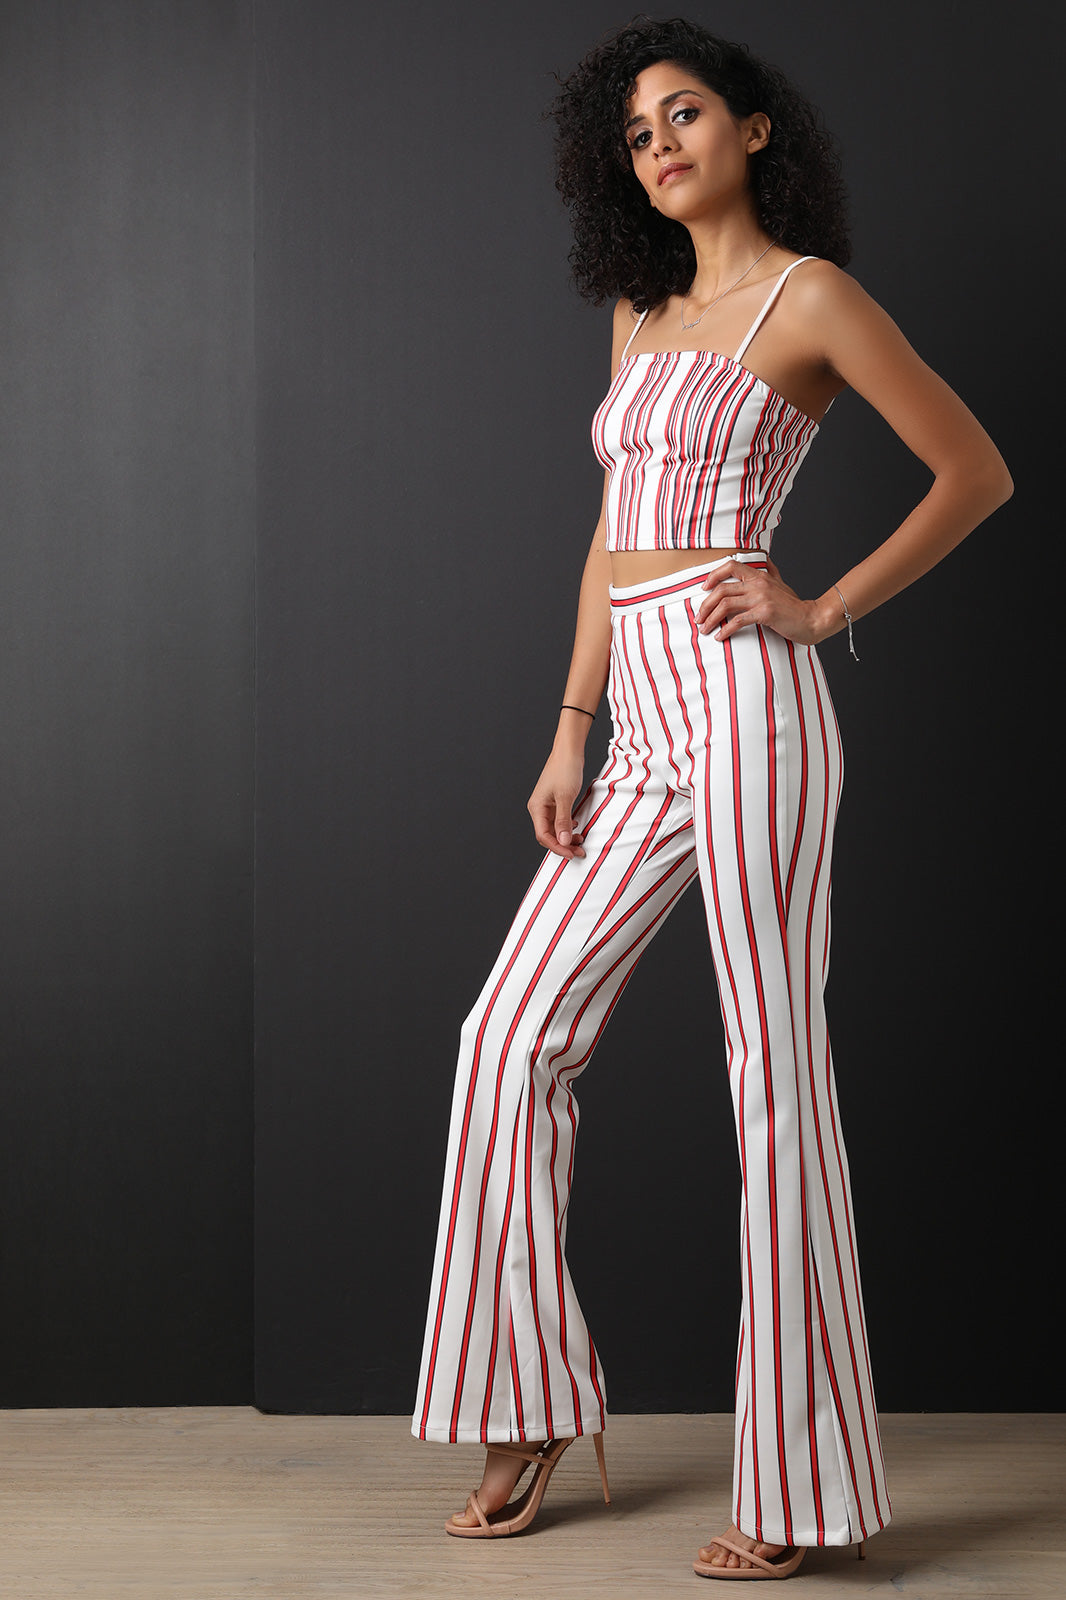 Scuba Knit Striped Crop Top With Flared Pants Set